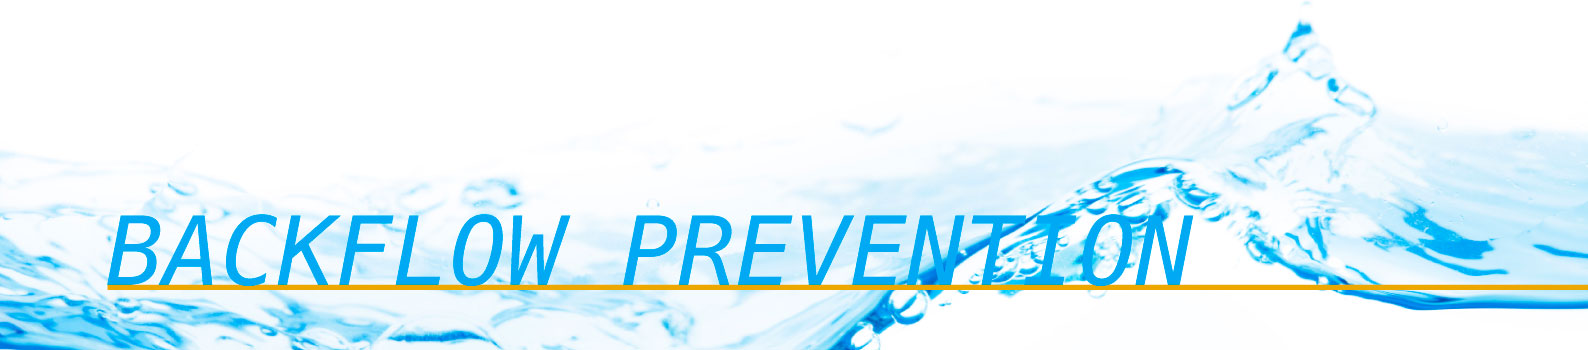 Backflow Prevention Experts